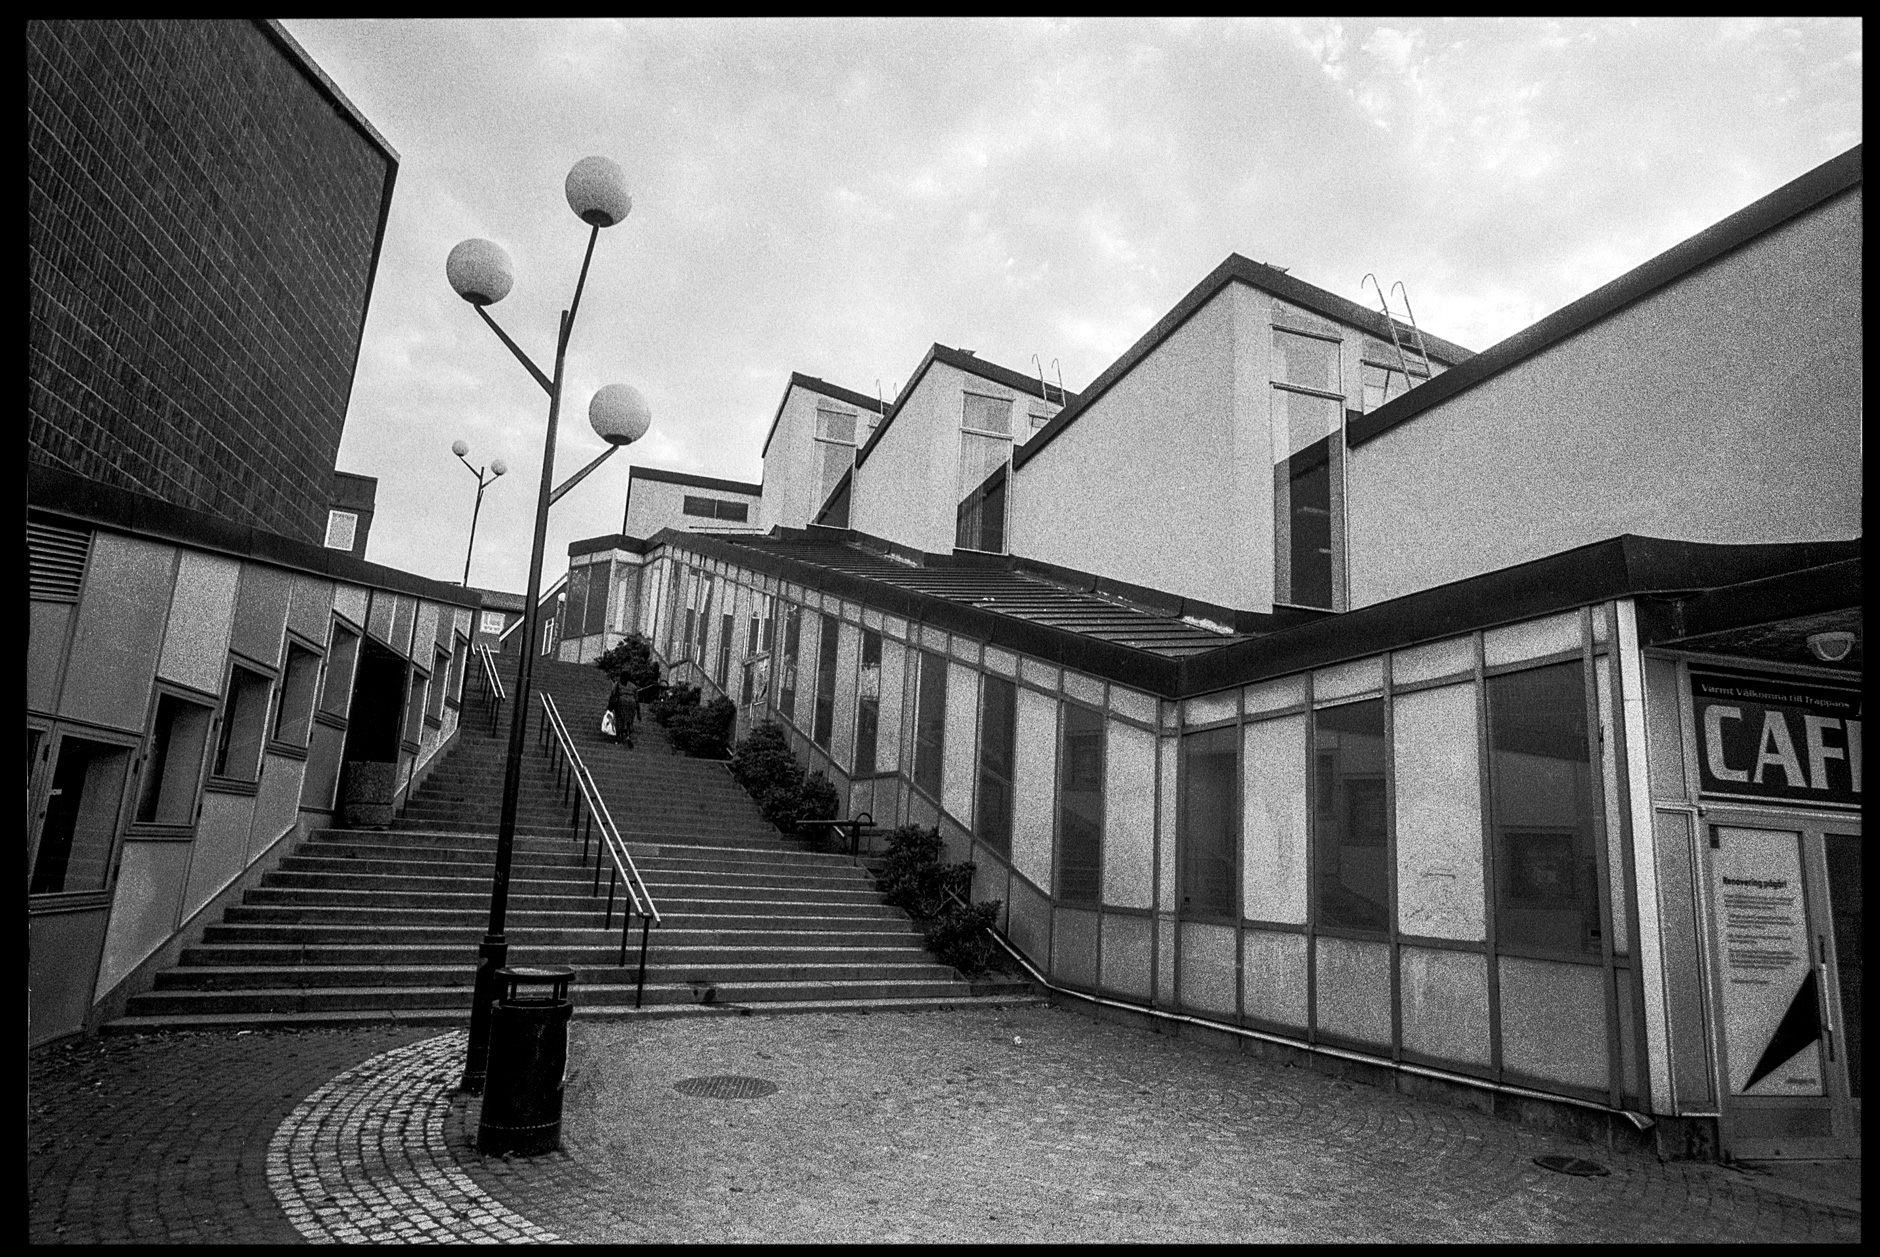 Architecture/street photography with a 21mm lens, part 3